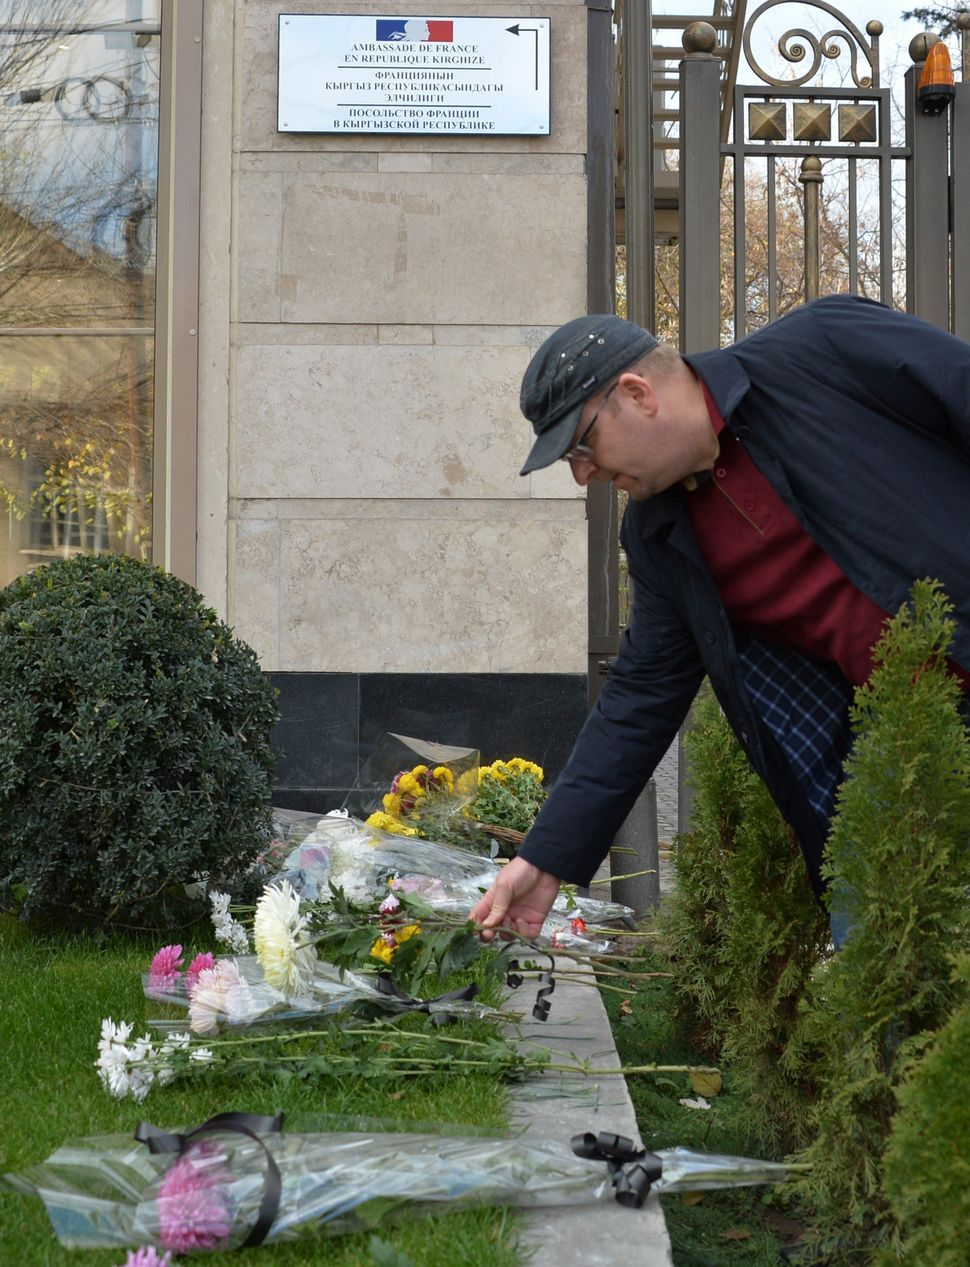 A man places flowers outside the French embassy in Bishkek, Kyrgyzstan, on Nov. 14, 2015.